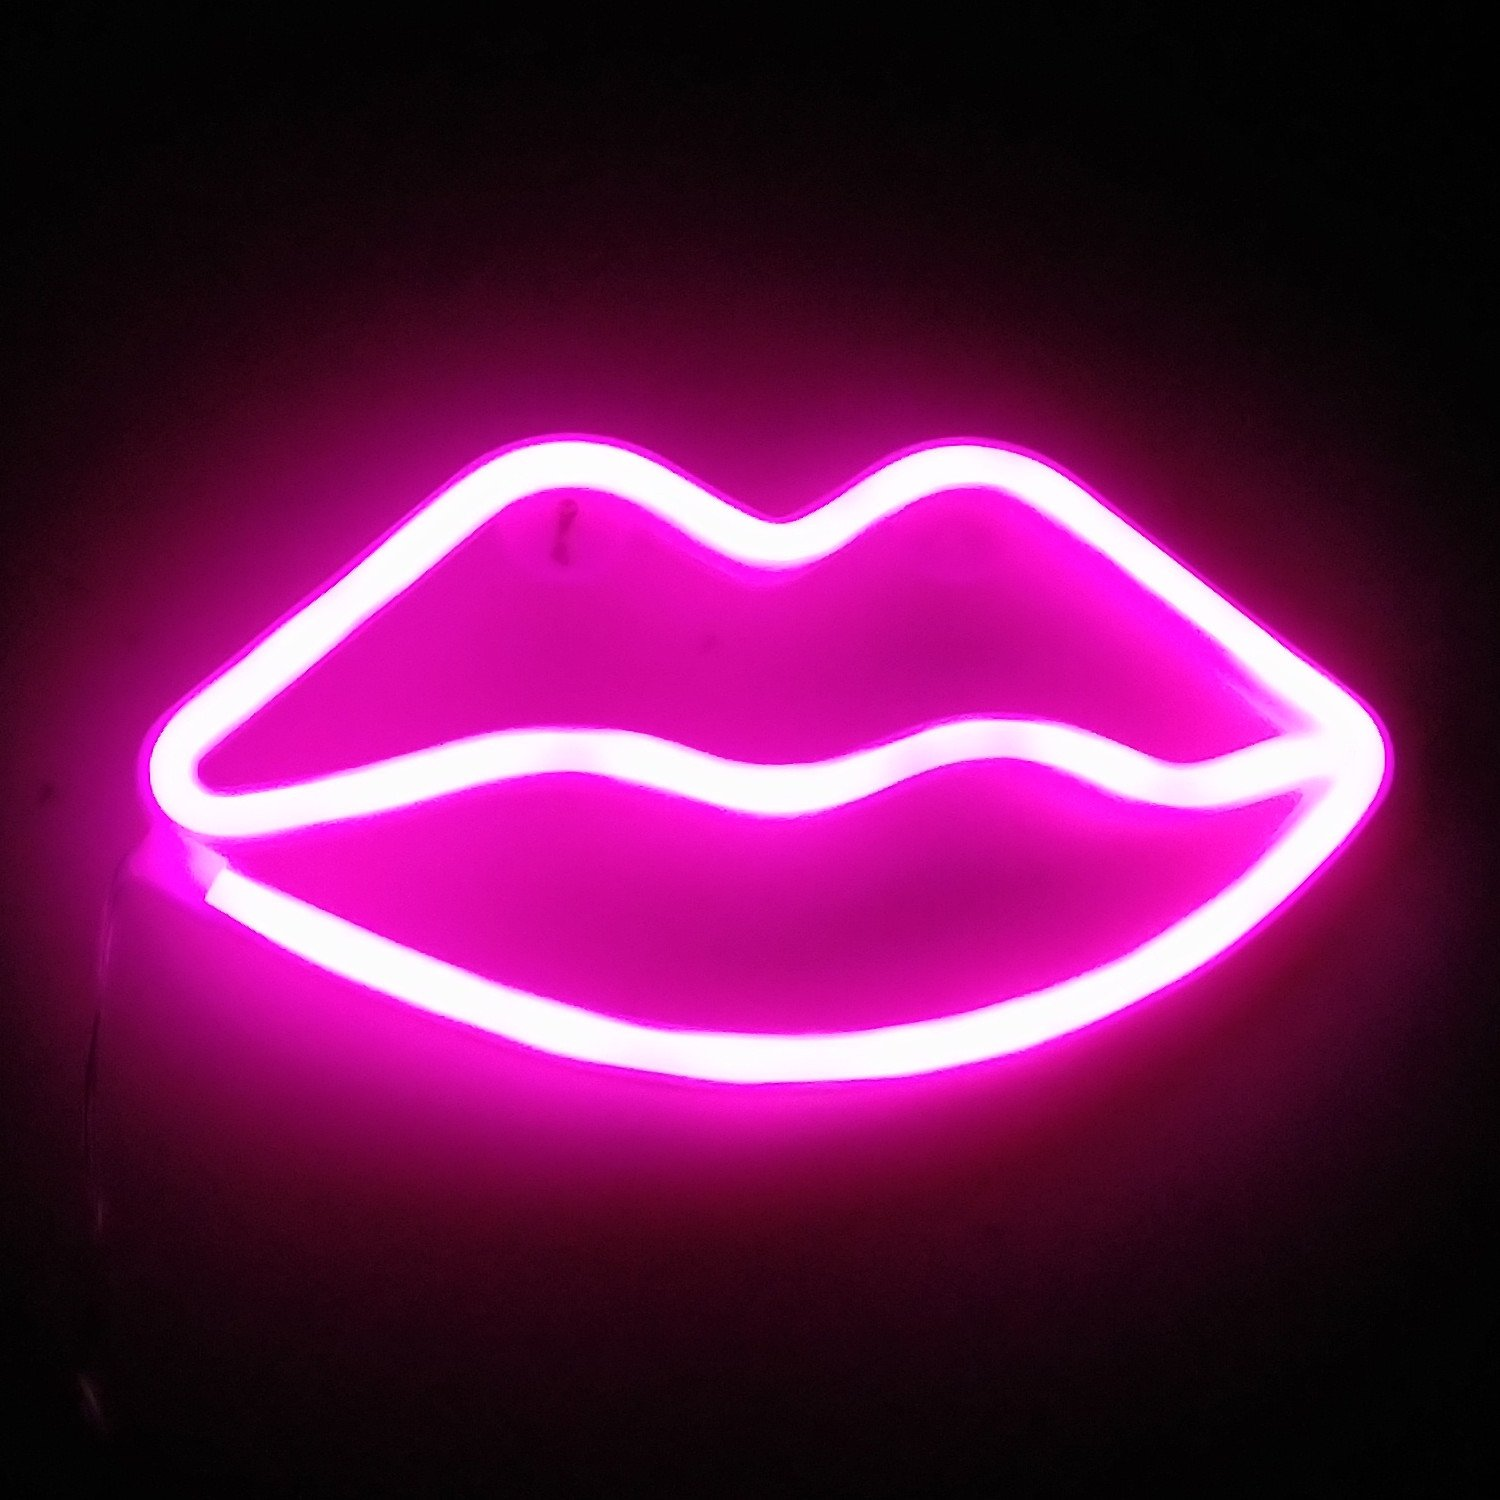 Lip Neon Signs LED Decor Light Wall Decor for Christmas Decoration Birthday Party Home LED Decorative Lights Wedding Event Banquet Party Decor (Lip Pink)